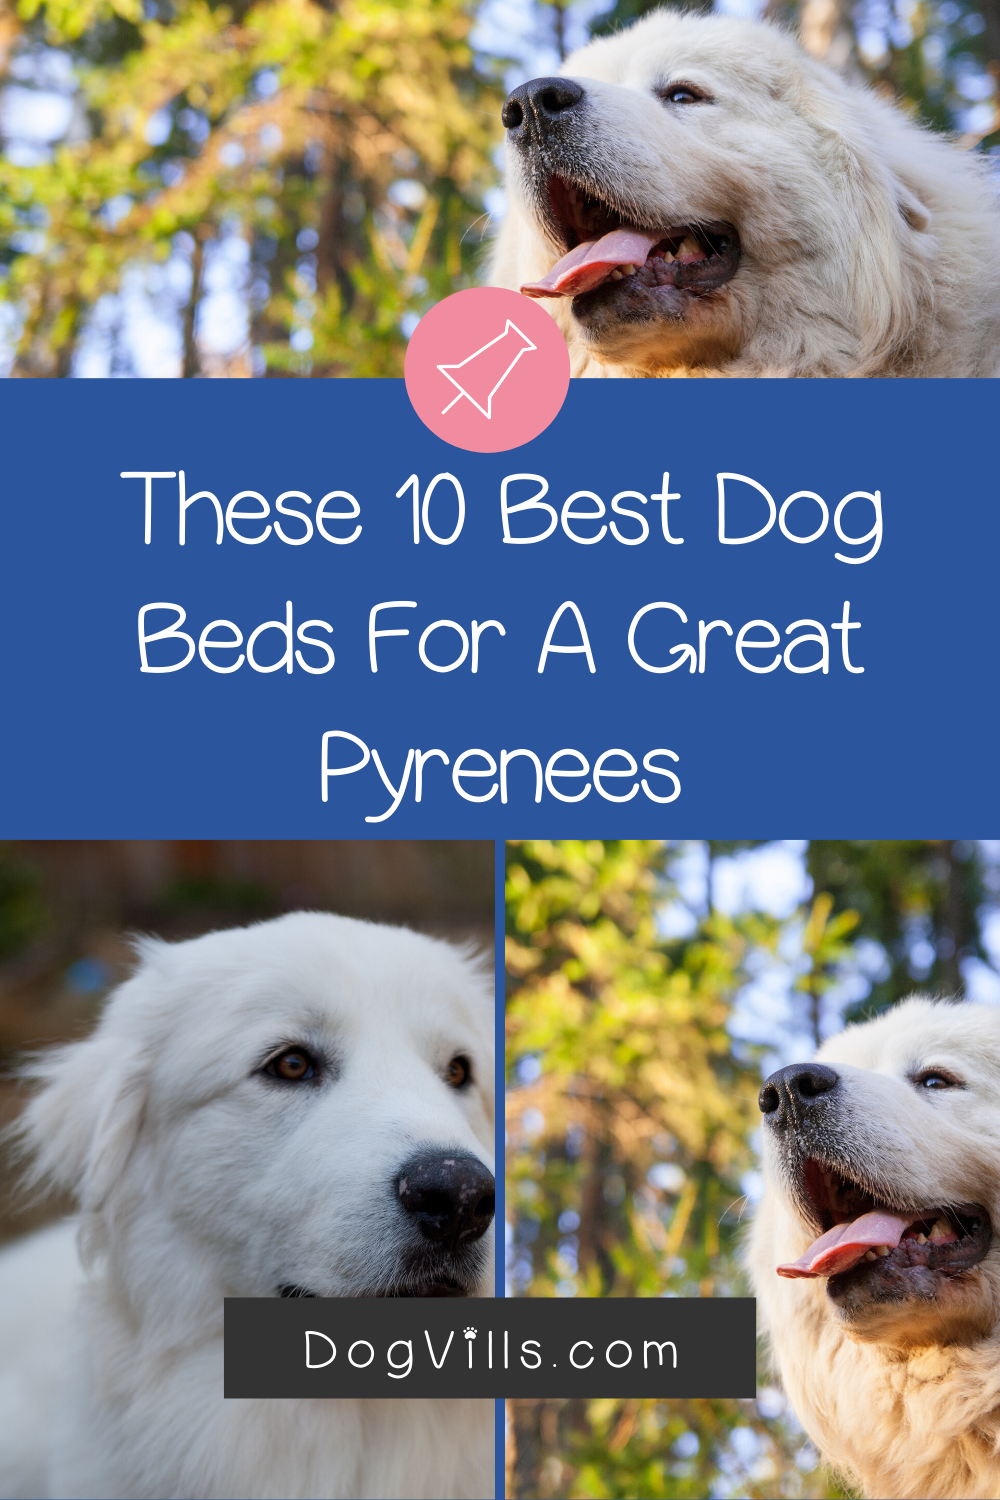 Top 10 Best Dog Beds for a Great Pyrenees (with Reviews